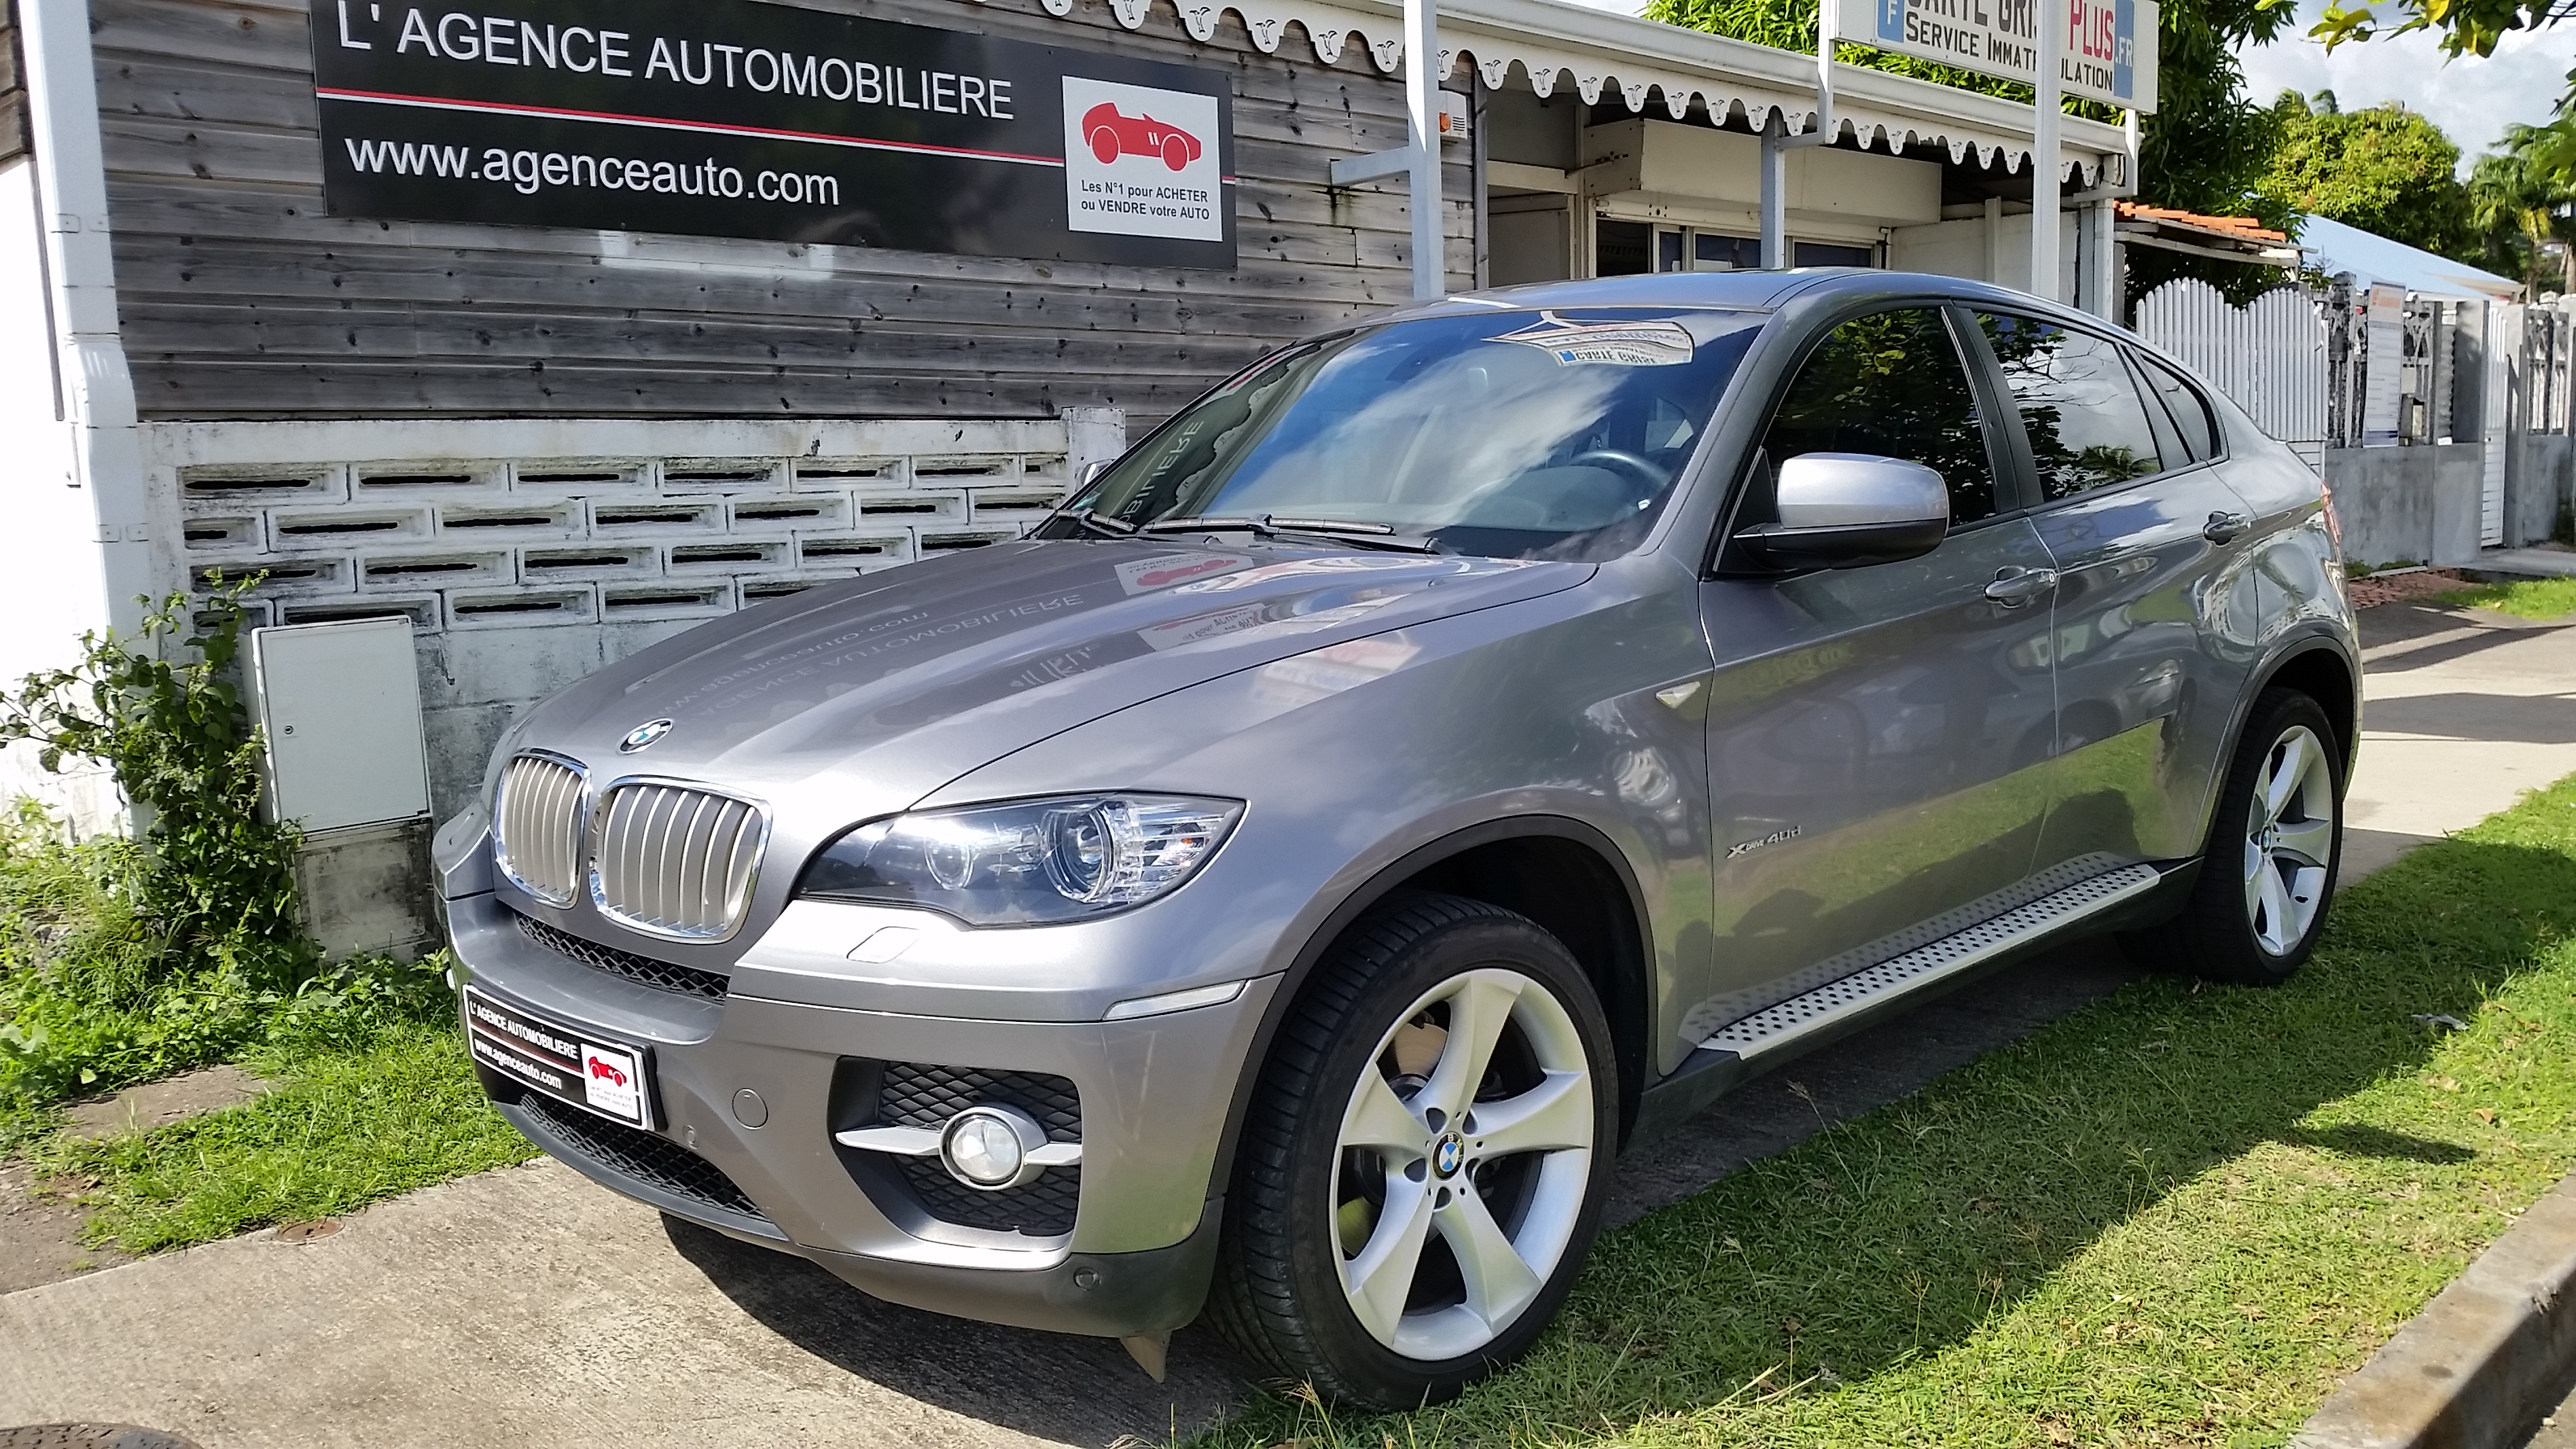 Bmw X6 Pack Luxe 40d Bi Turbo Occasion Martinique Pas Cher Voiture Occasion Martinique 972 Agence Auto